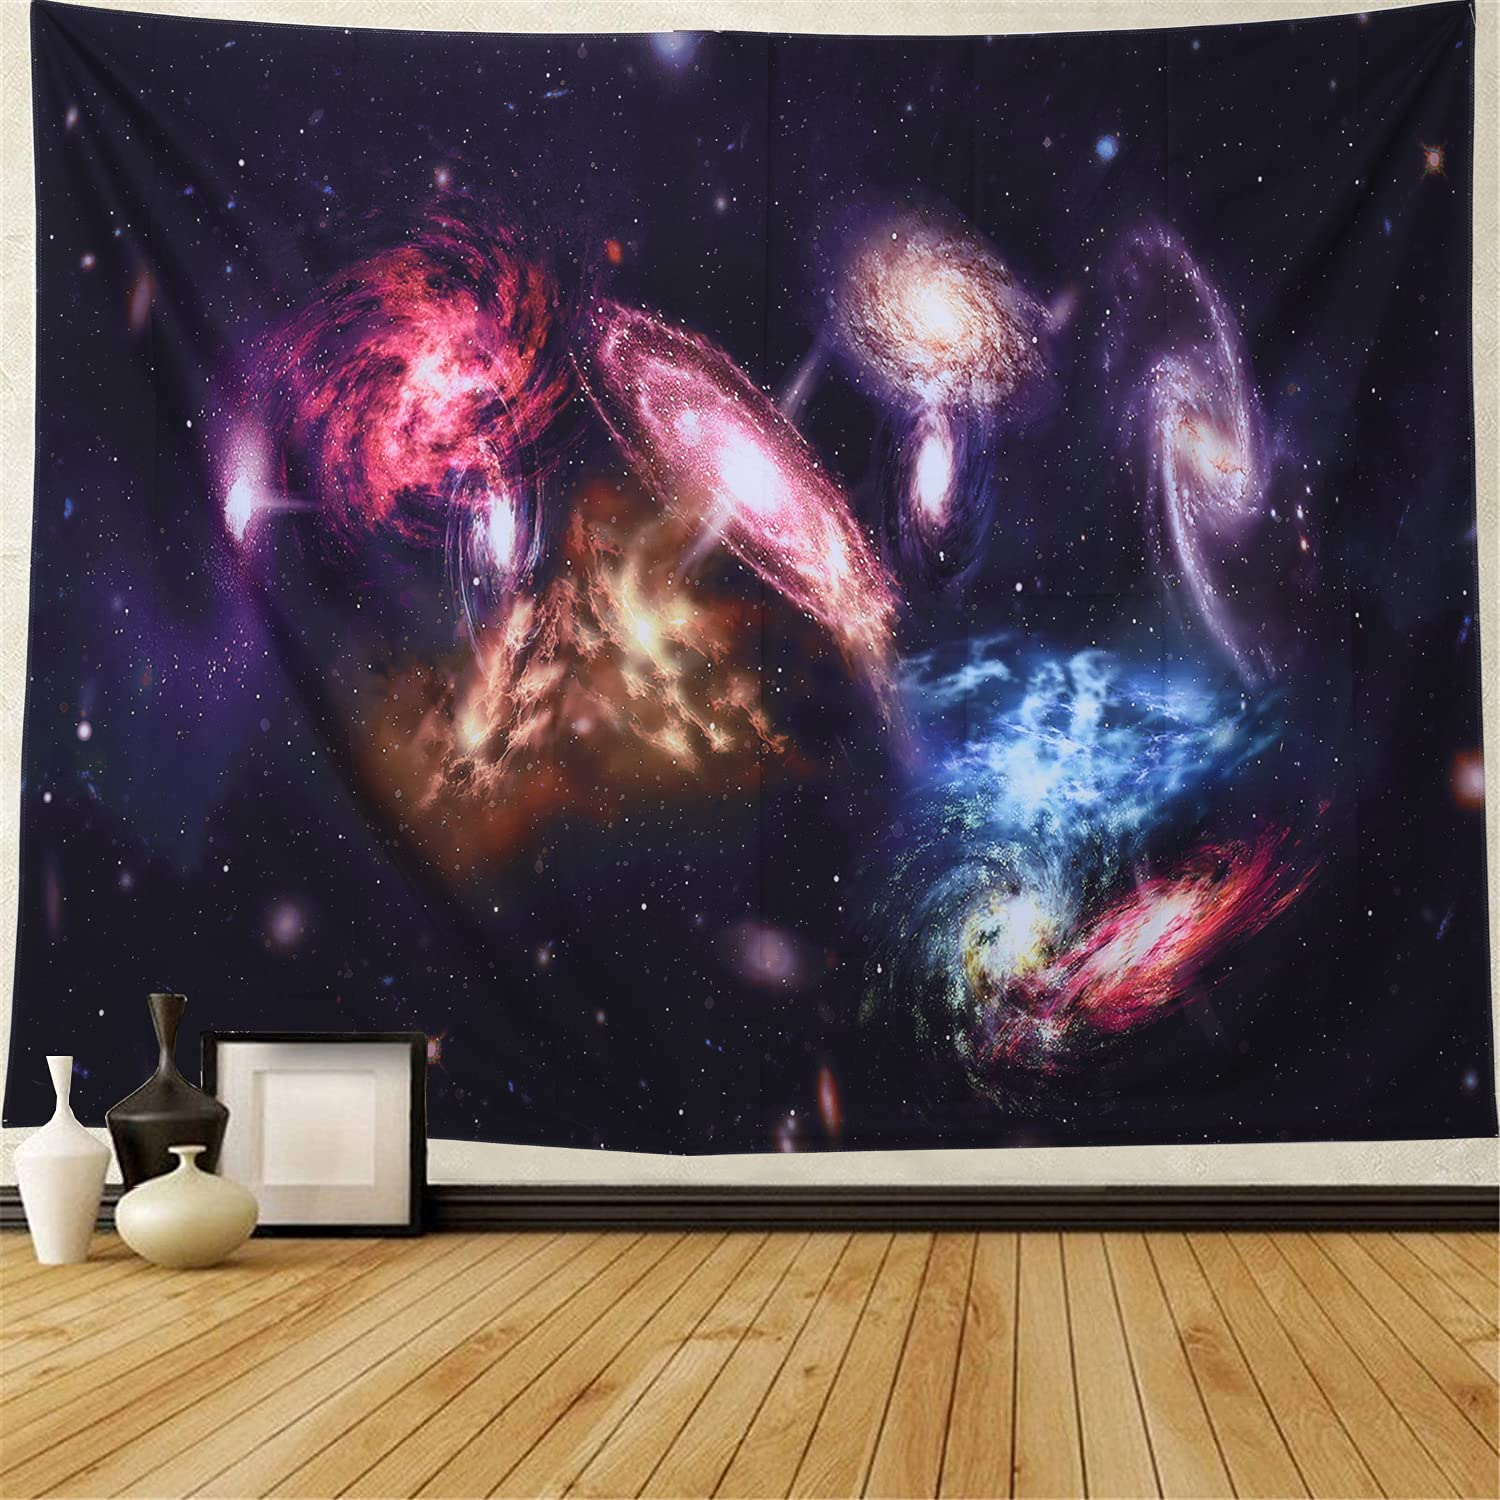 Black Starry Tapestry Forest Tapestry - Tapestry For Bedroom Room Decor Wall Hanging Trippy Decor Tapestr, Suitable For Bedroom, Living Room, Dormitory, Wall Decoration (Galaxy Tapestry)